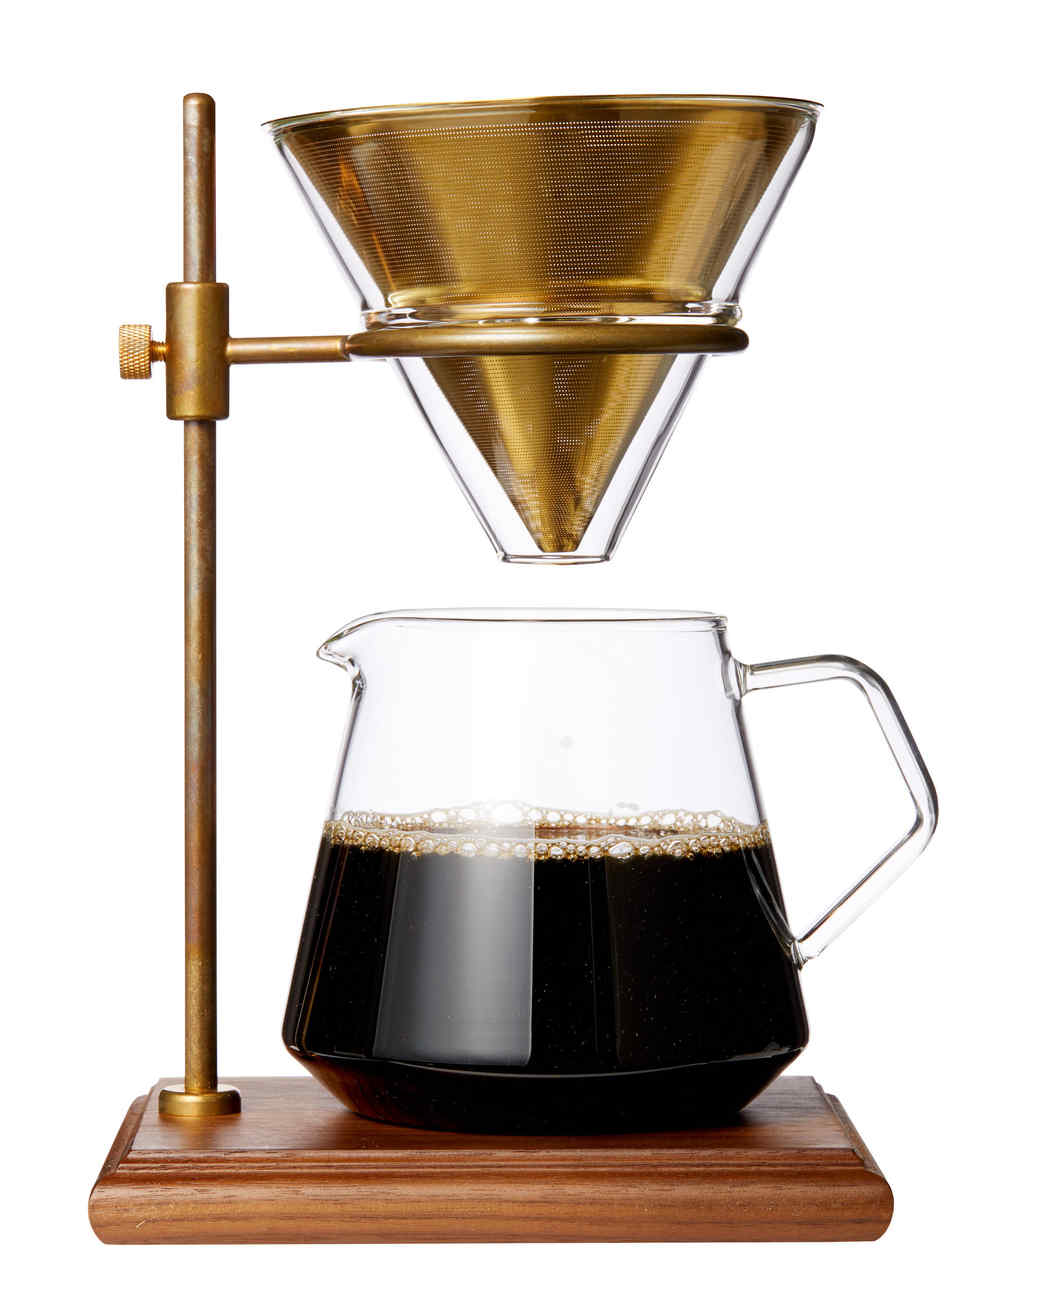 mothers day gift guide pour over coffee